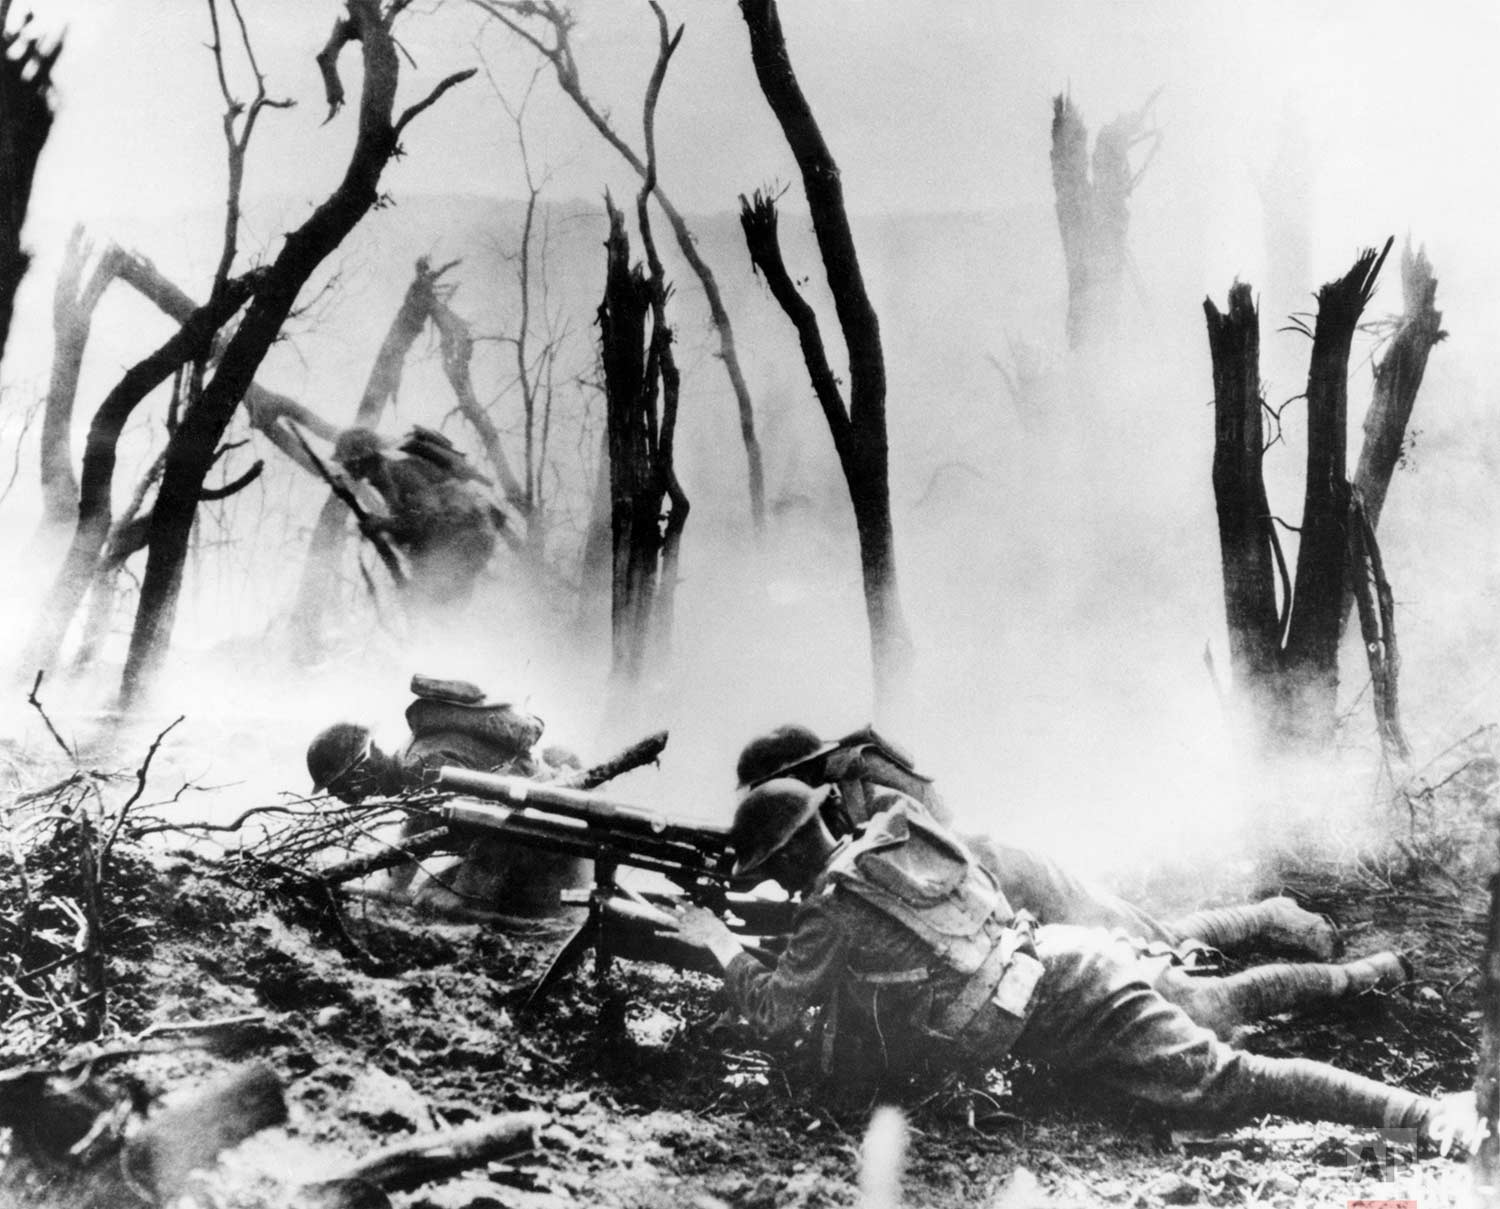 In this Sept. 26, 1918 photo, a U.S .Army 37-mm gun crew man their position during the World War One Meuse-Argonne Allied offensive in France. (AP Photo)